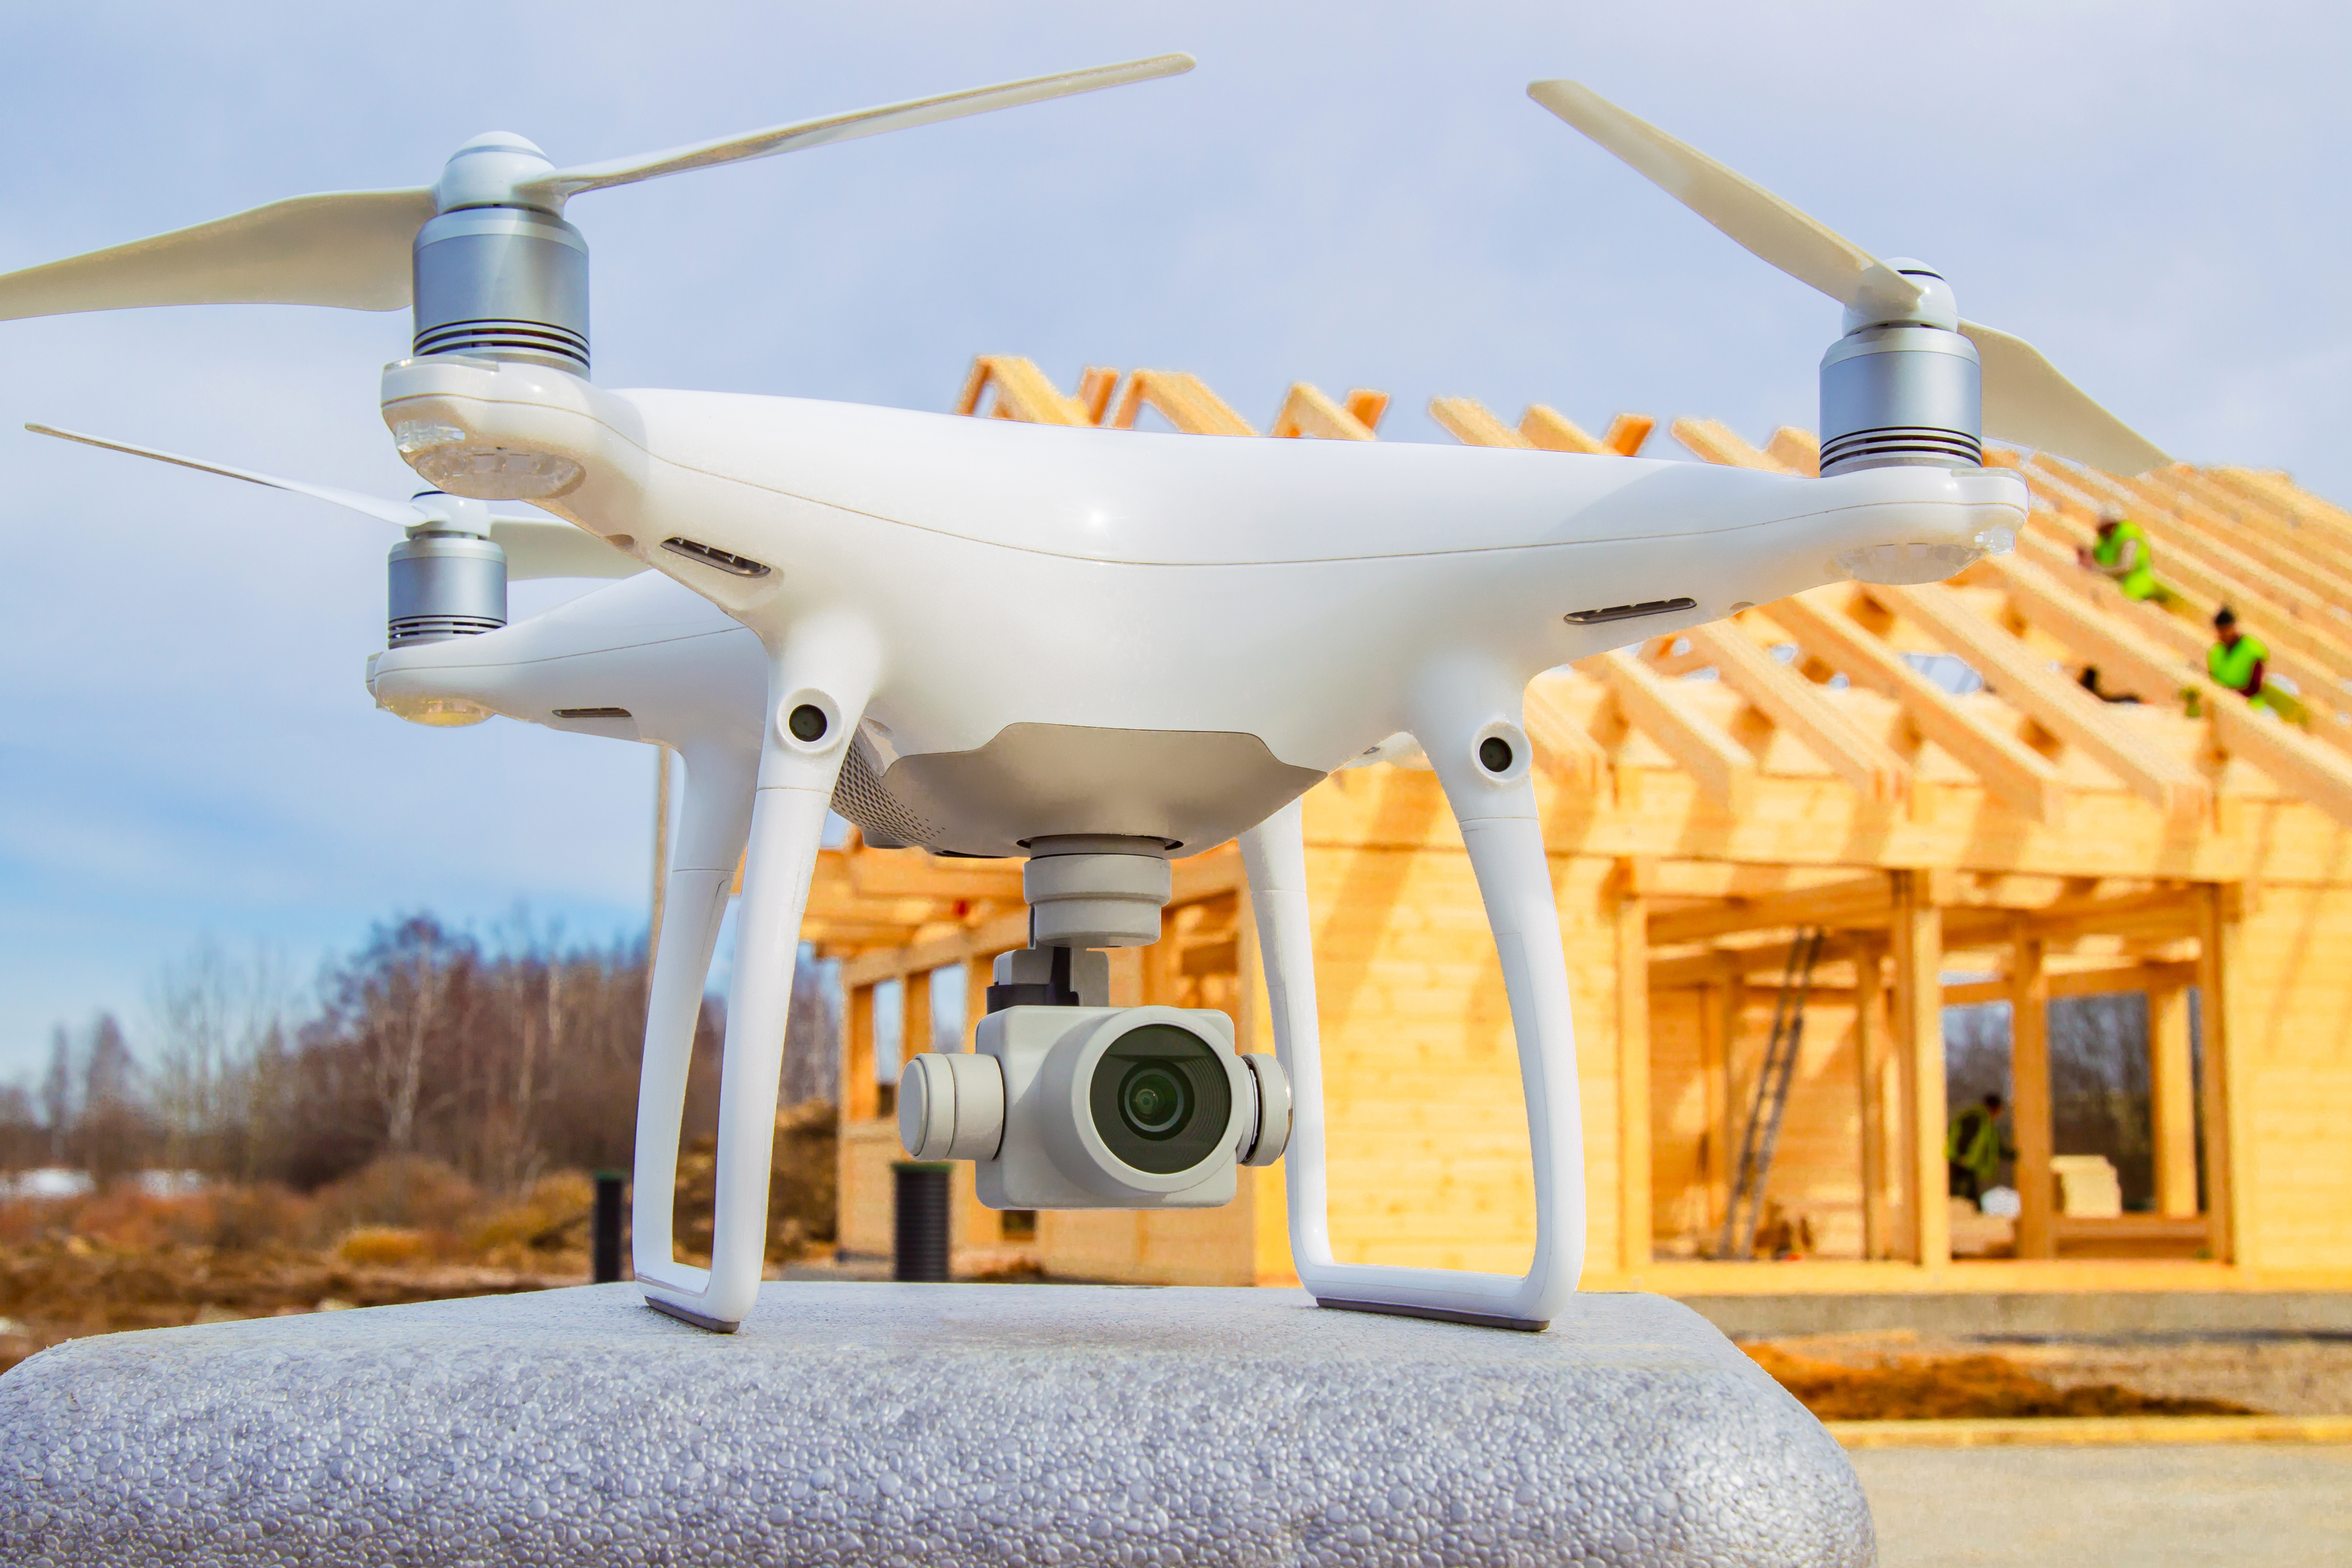 drone in front of house construction